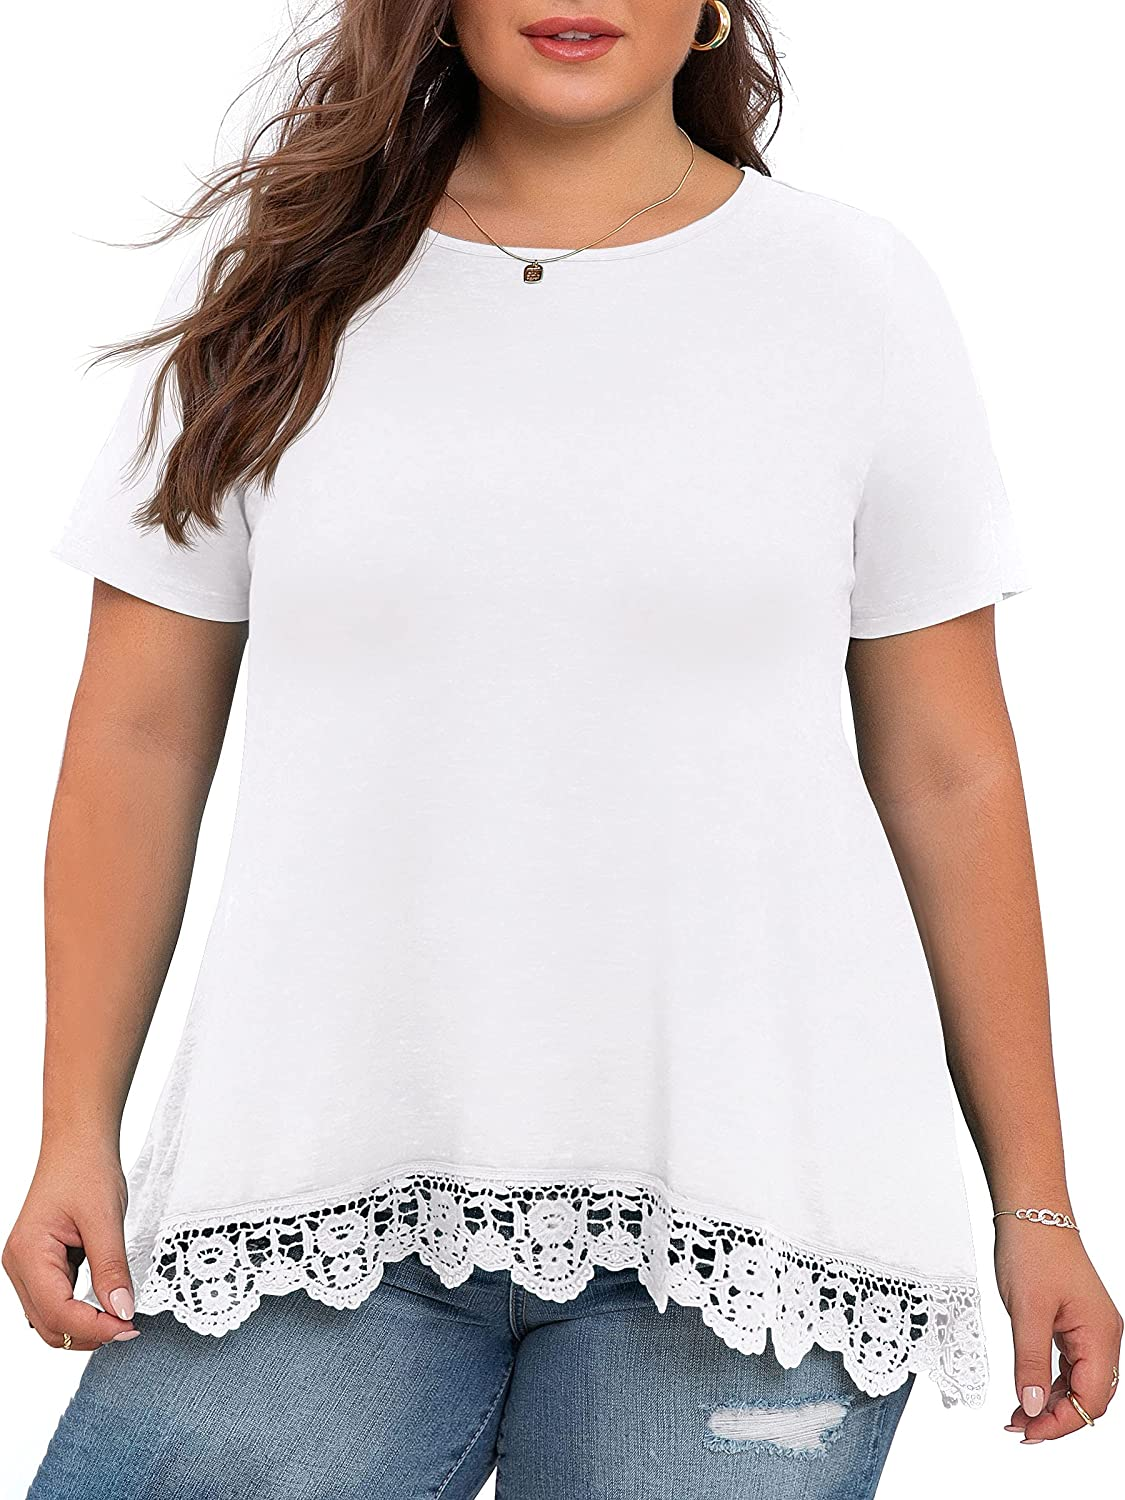 OLRIK Plus Size Tops for Women Summer Casual Womens Short Sleeve/Long Sleeve Lace Shirts and Blouses